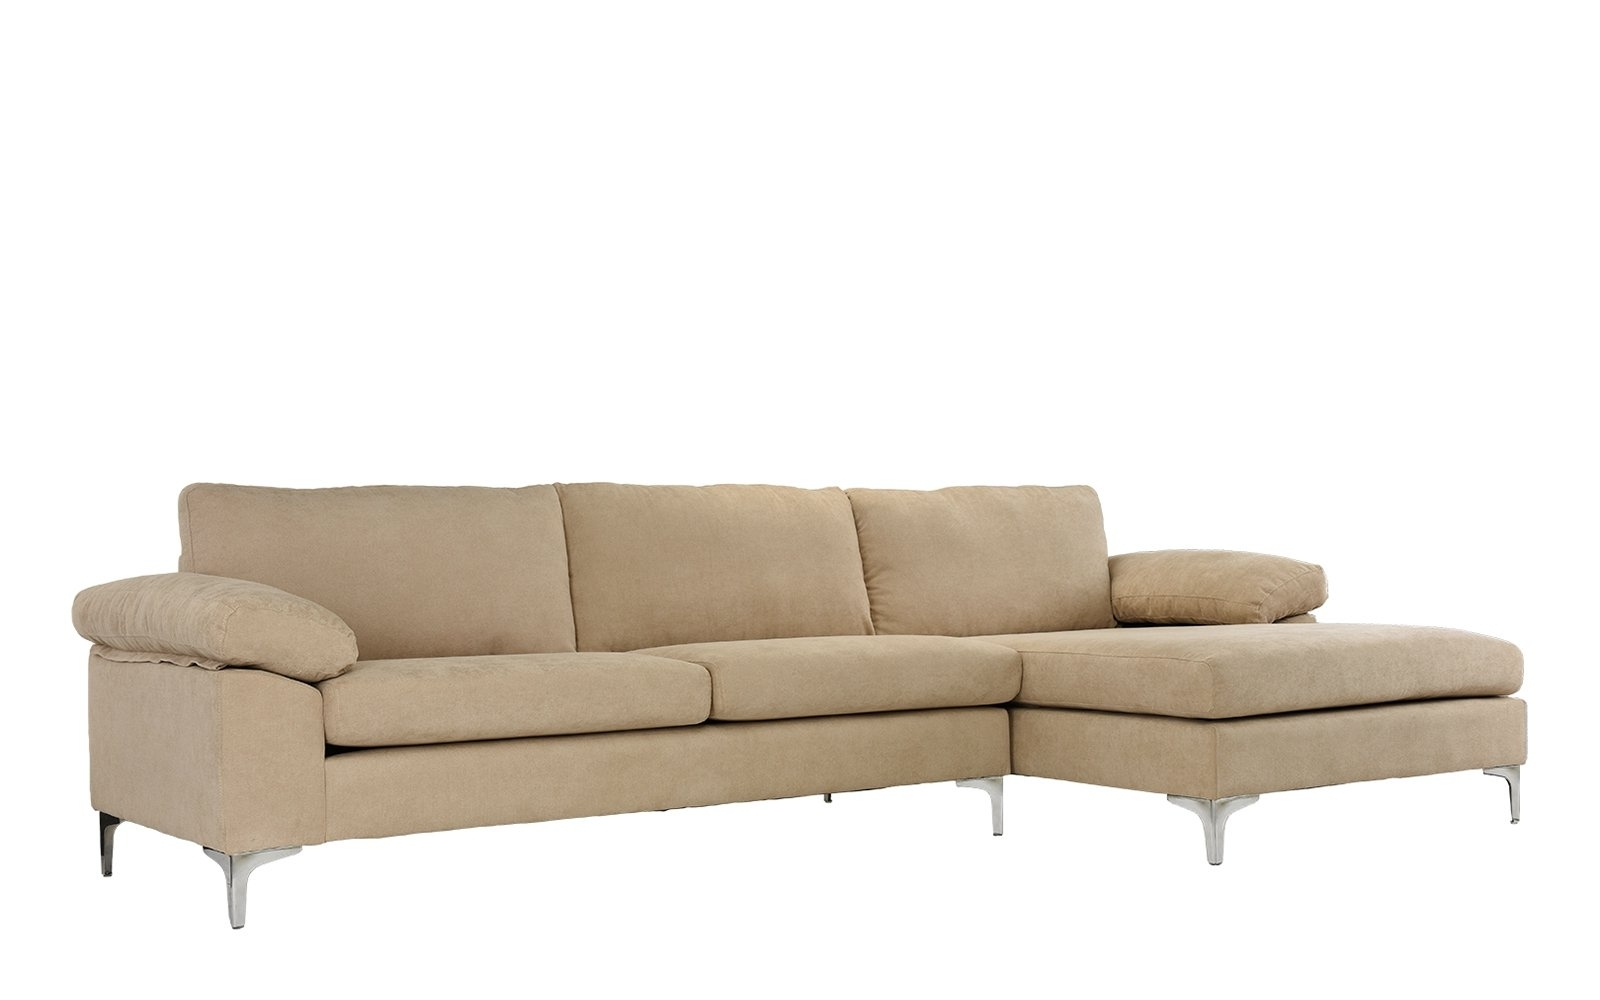 Best Chic Houzz Modern Sectional Sofas #25326 Within Well Known Houzz Sectional Sofas (View 4 of 20)